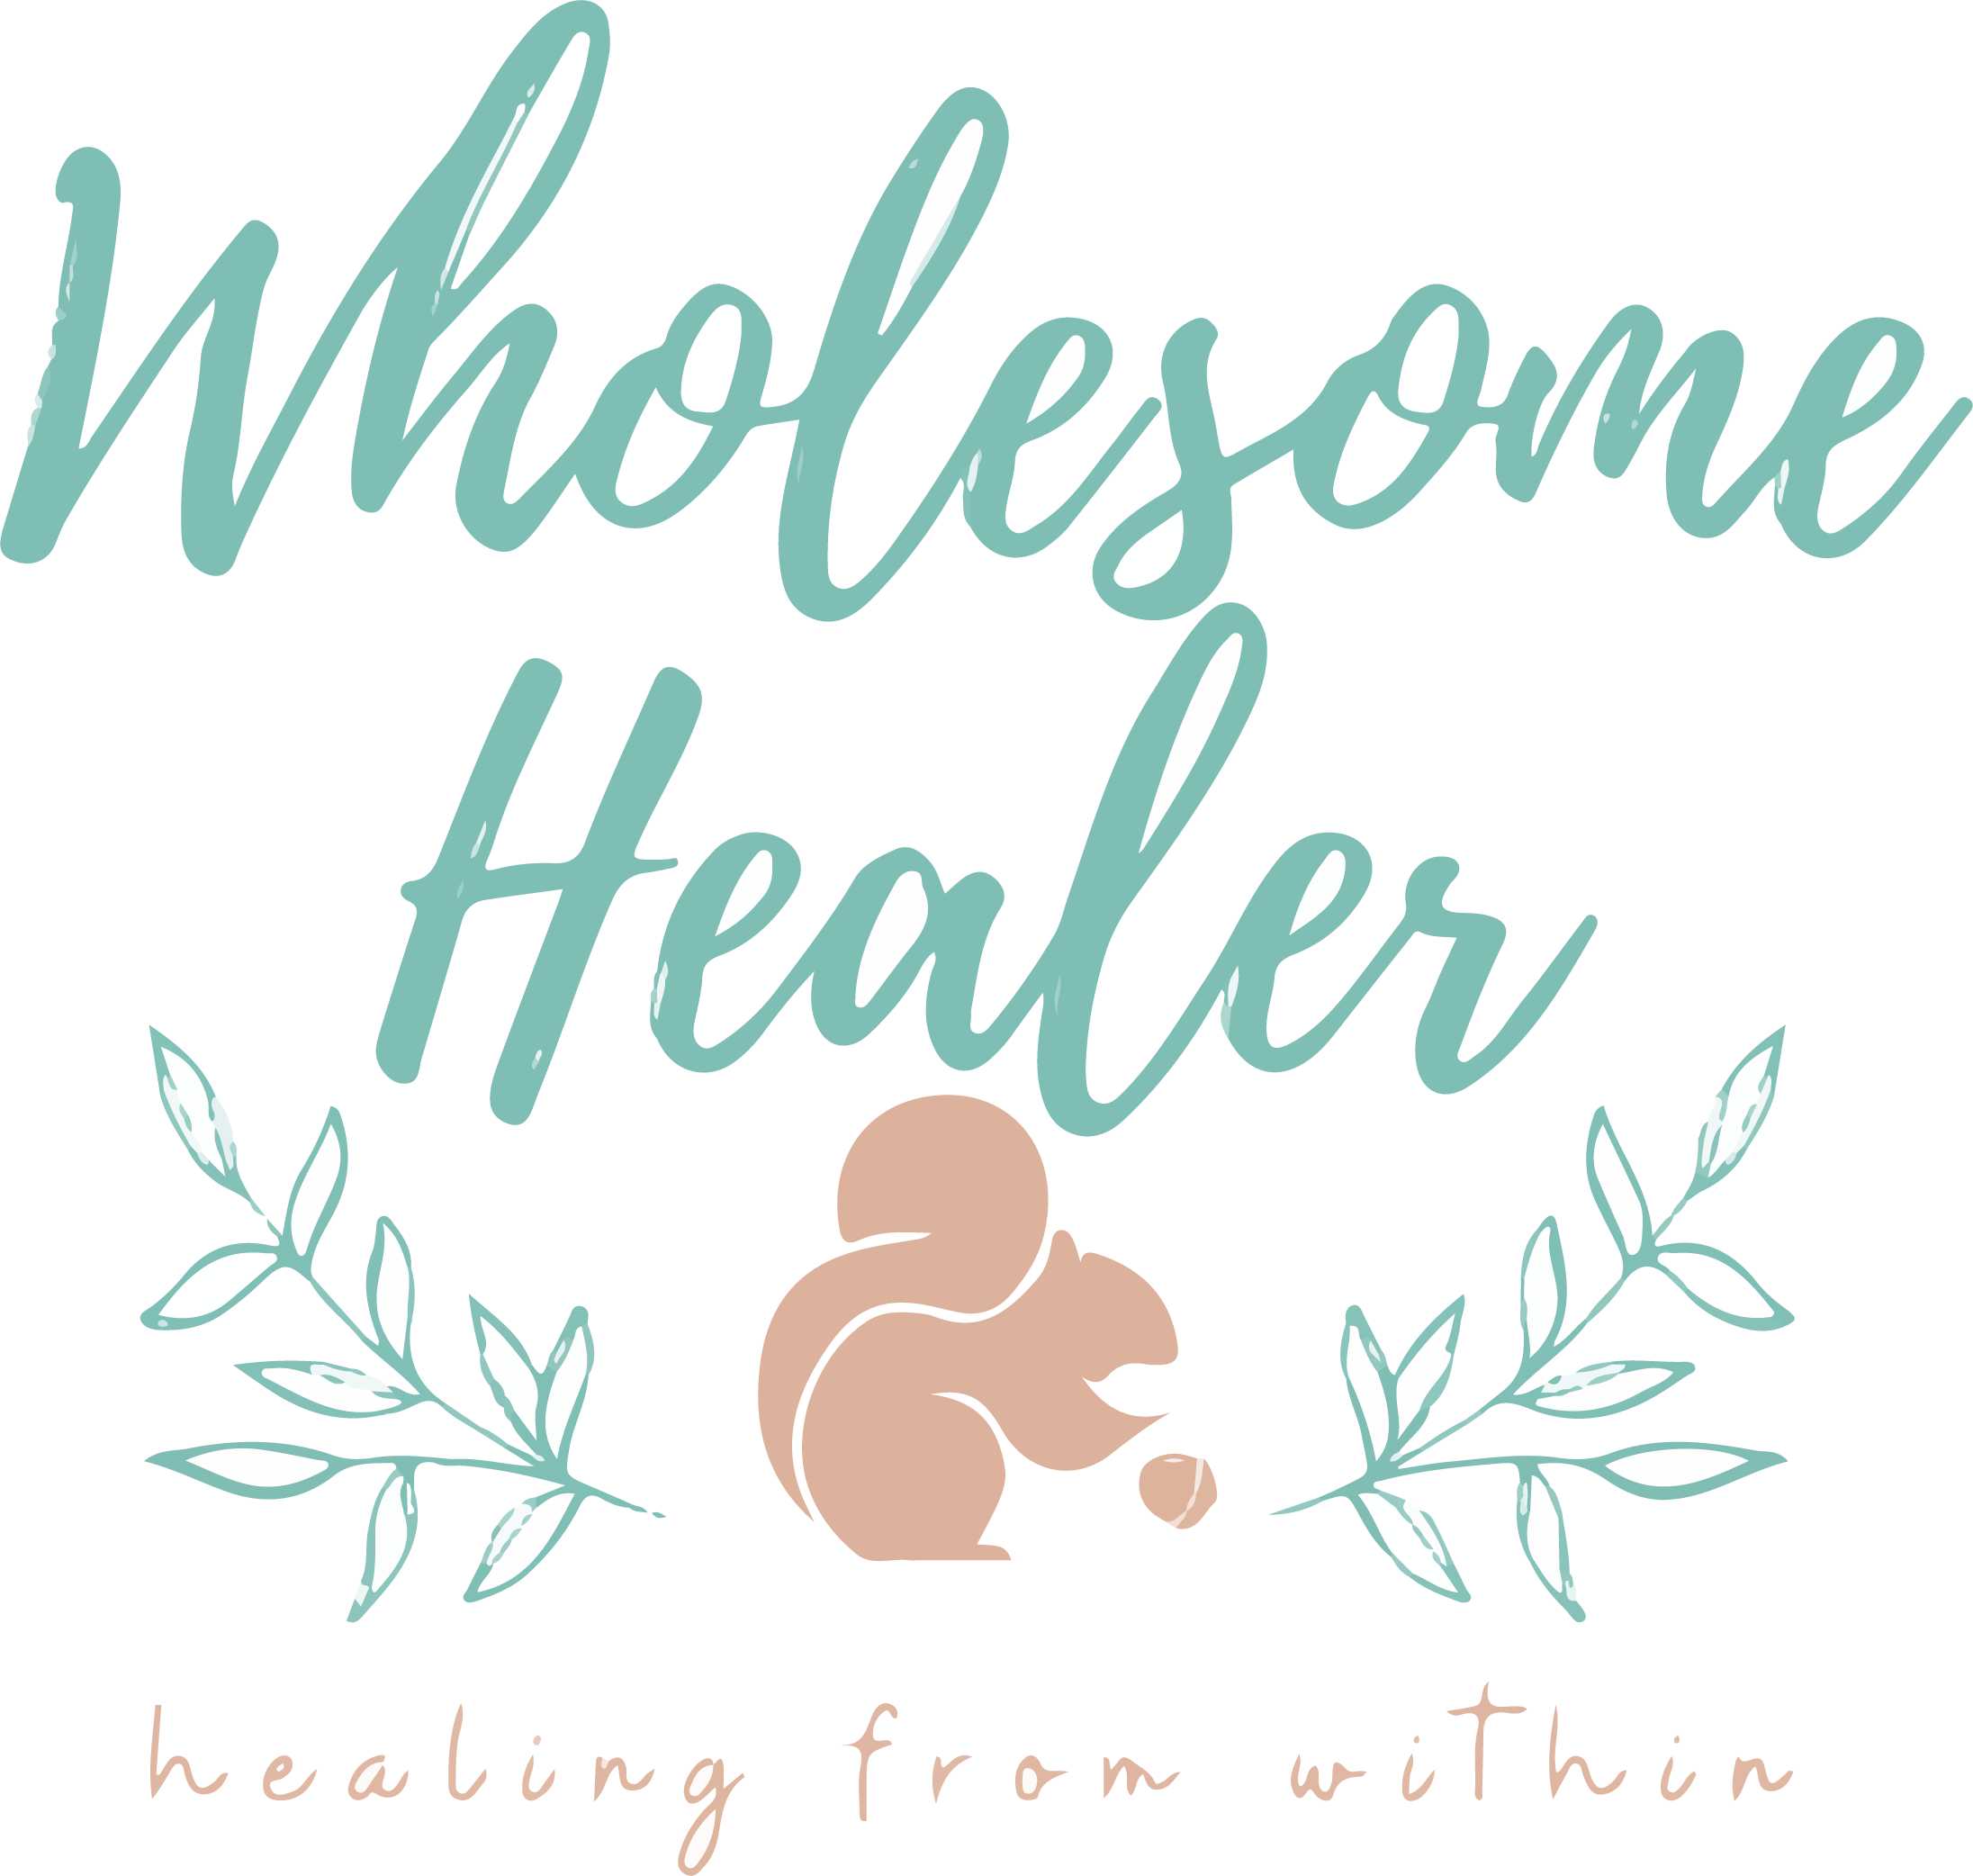 Wholesome Healer in Now Vedic Witch Ayurveda and Apothecary